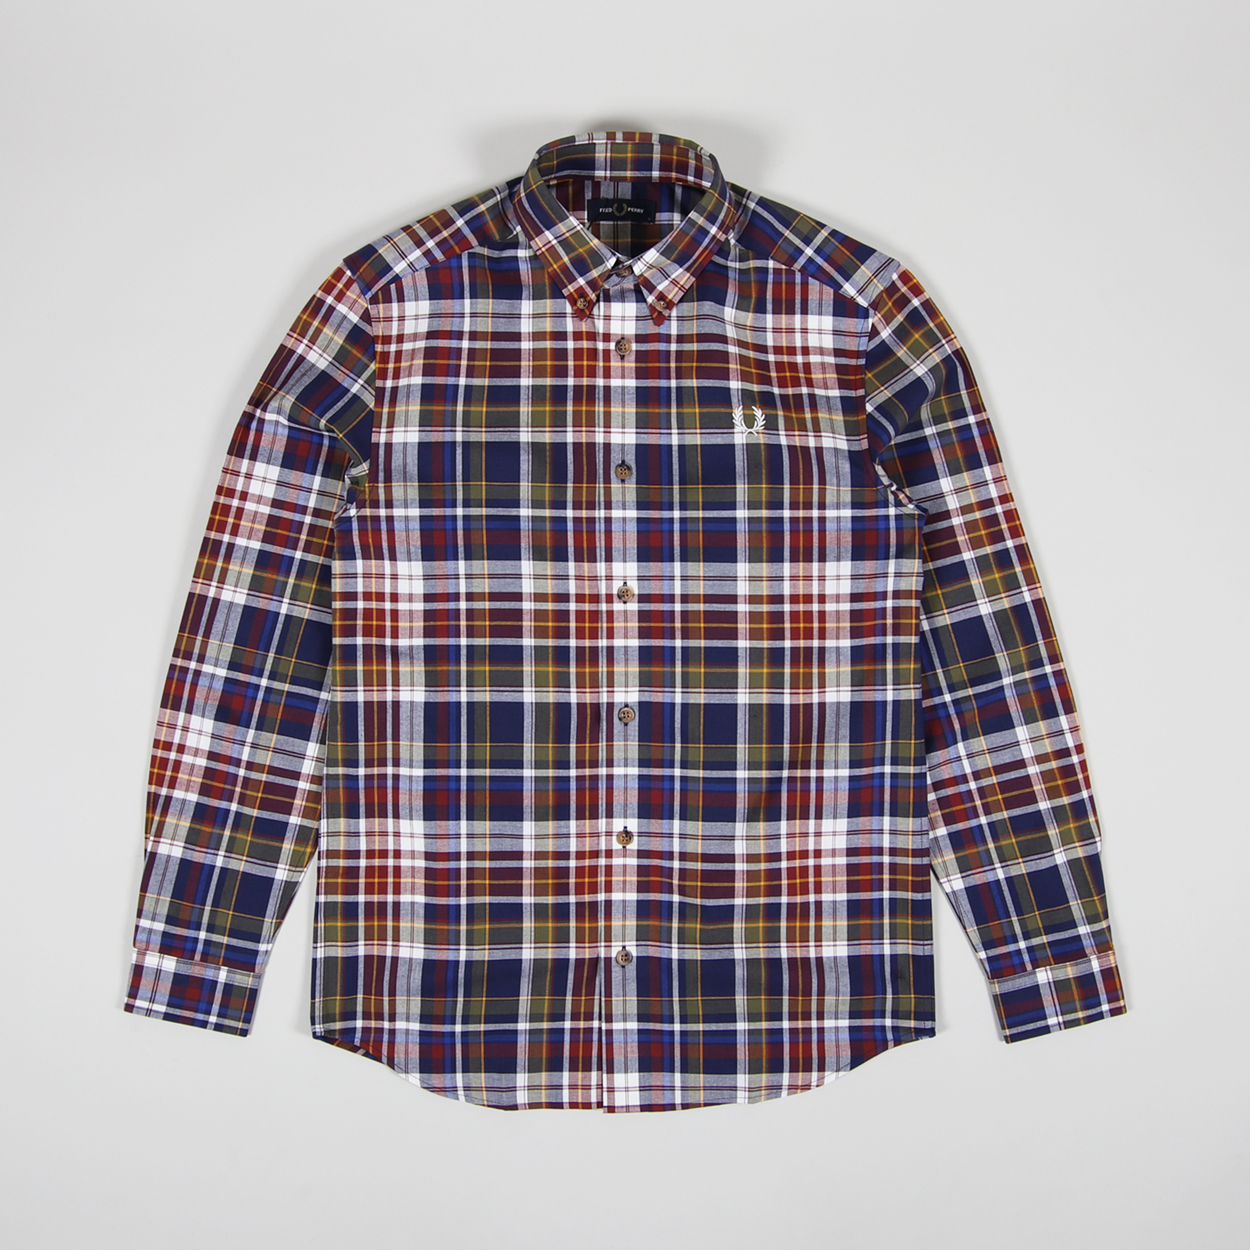 New Men/'s The North Face Shadow Gingham Woven Short Sleeve Shirt Dusty Blue